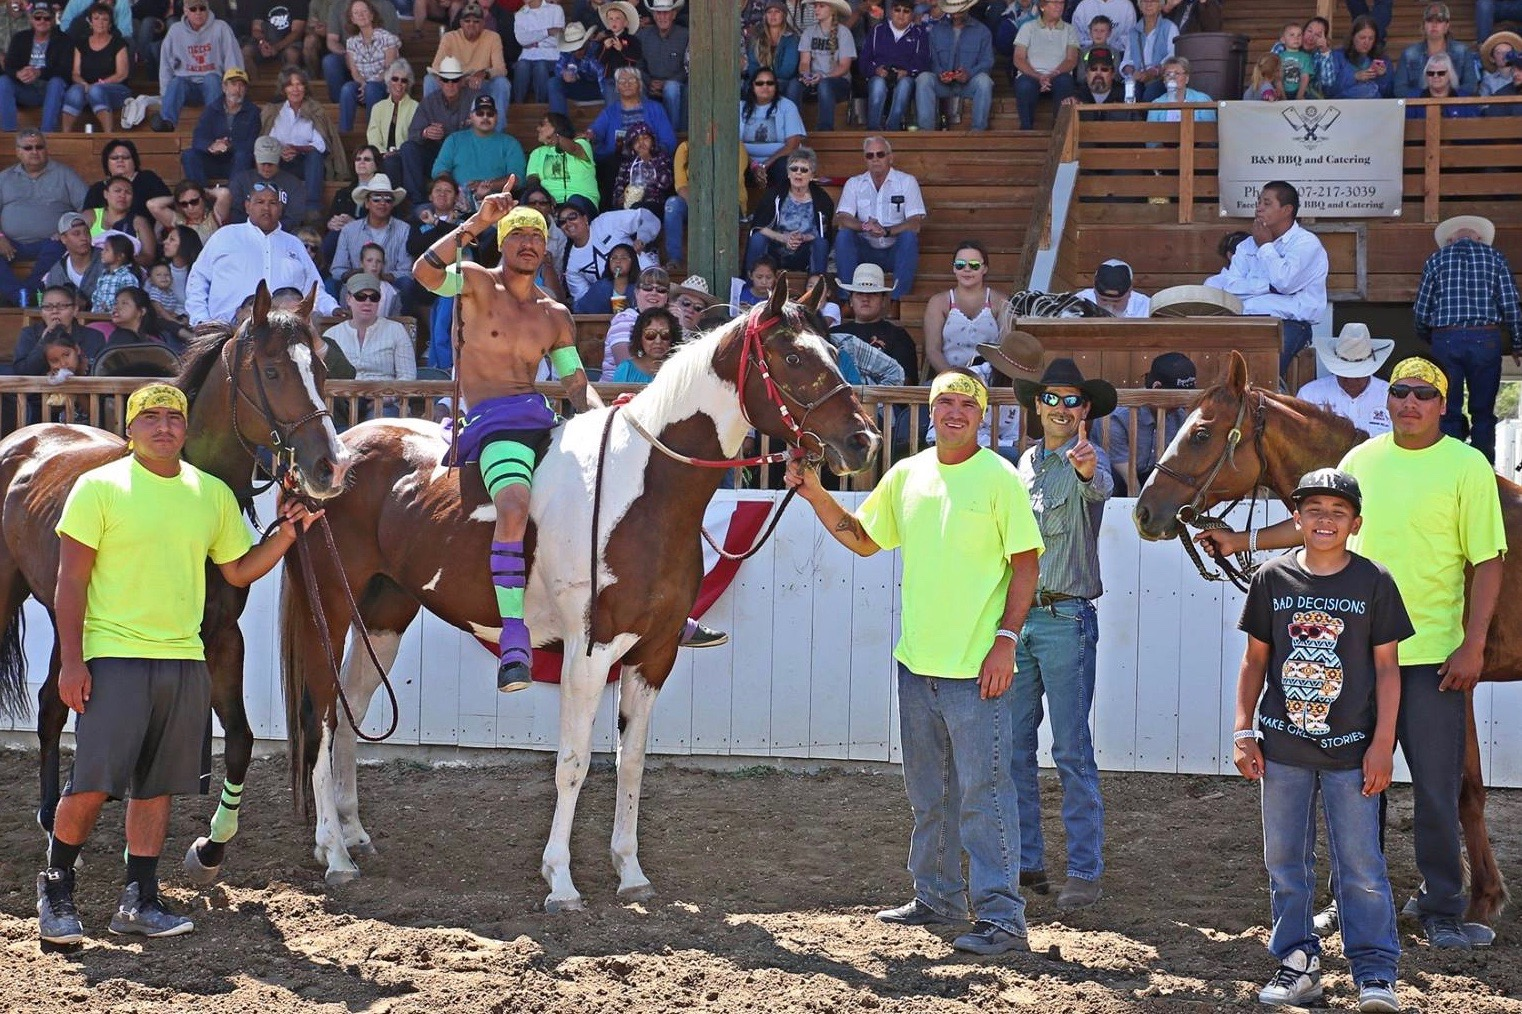 Lakota Country Times: Teams compete for Indian horse relay title